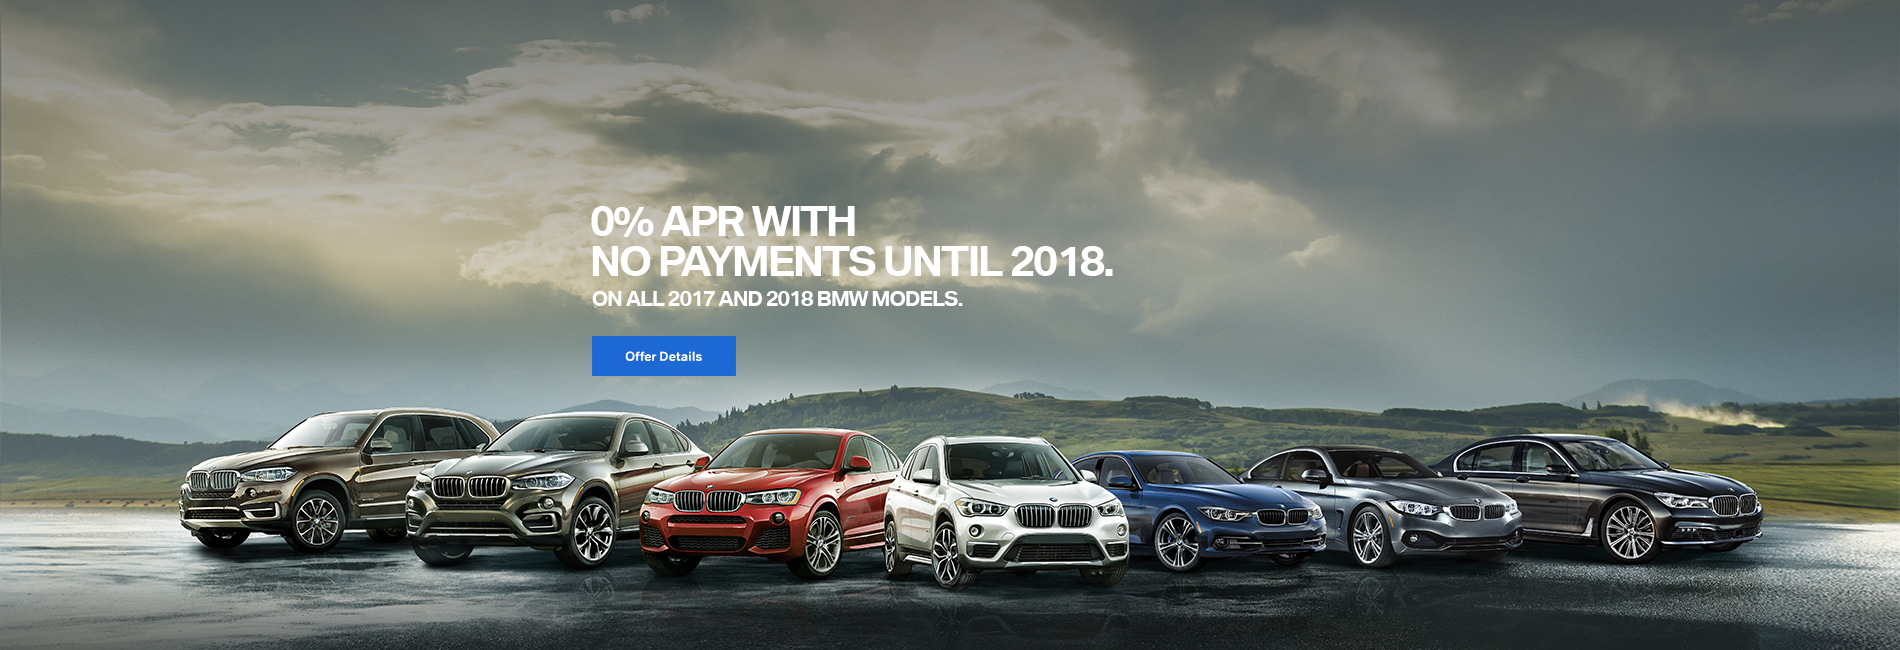 Bmw financial get affordable car loans bmw deals South motors bmw used cars